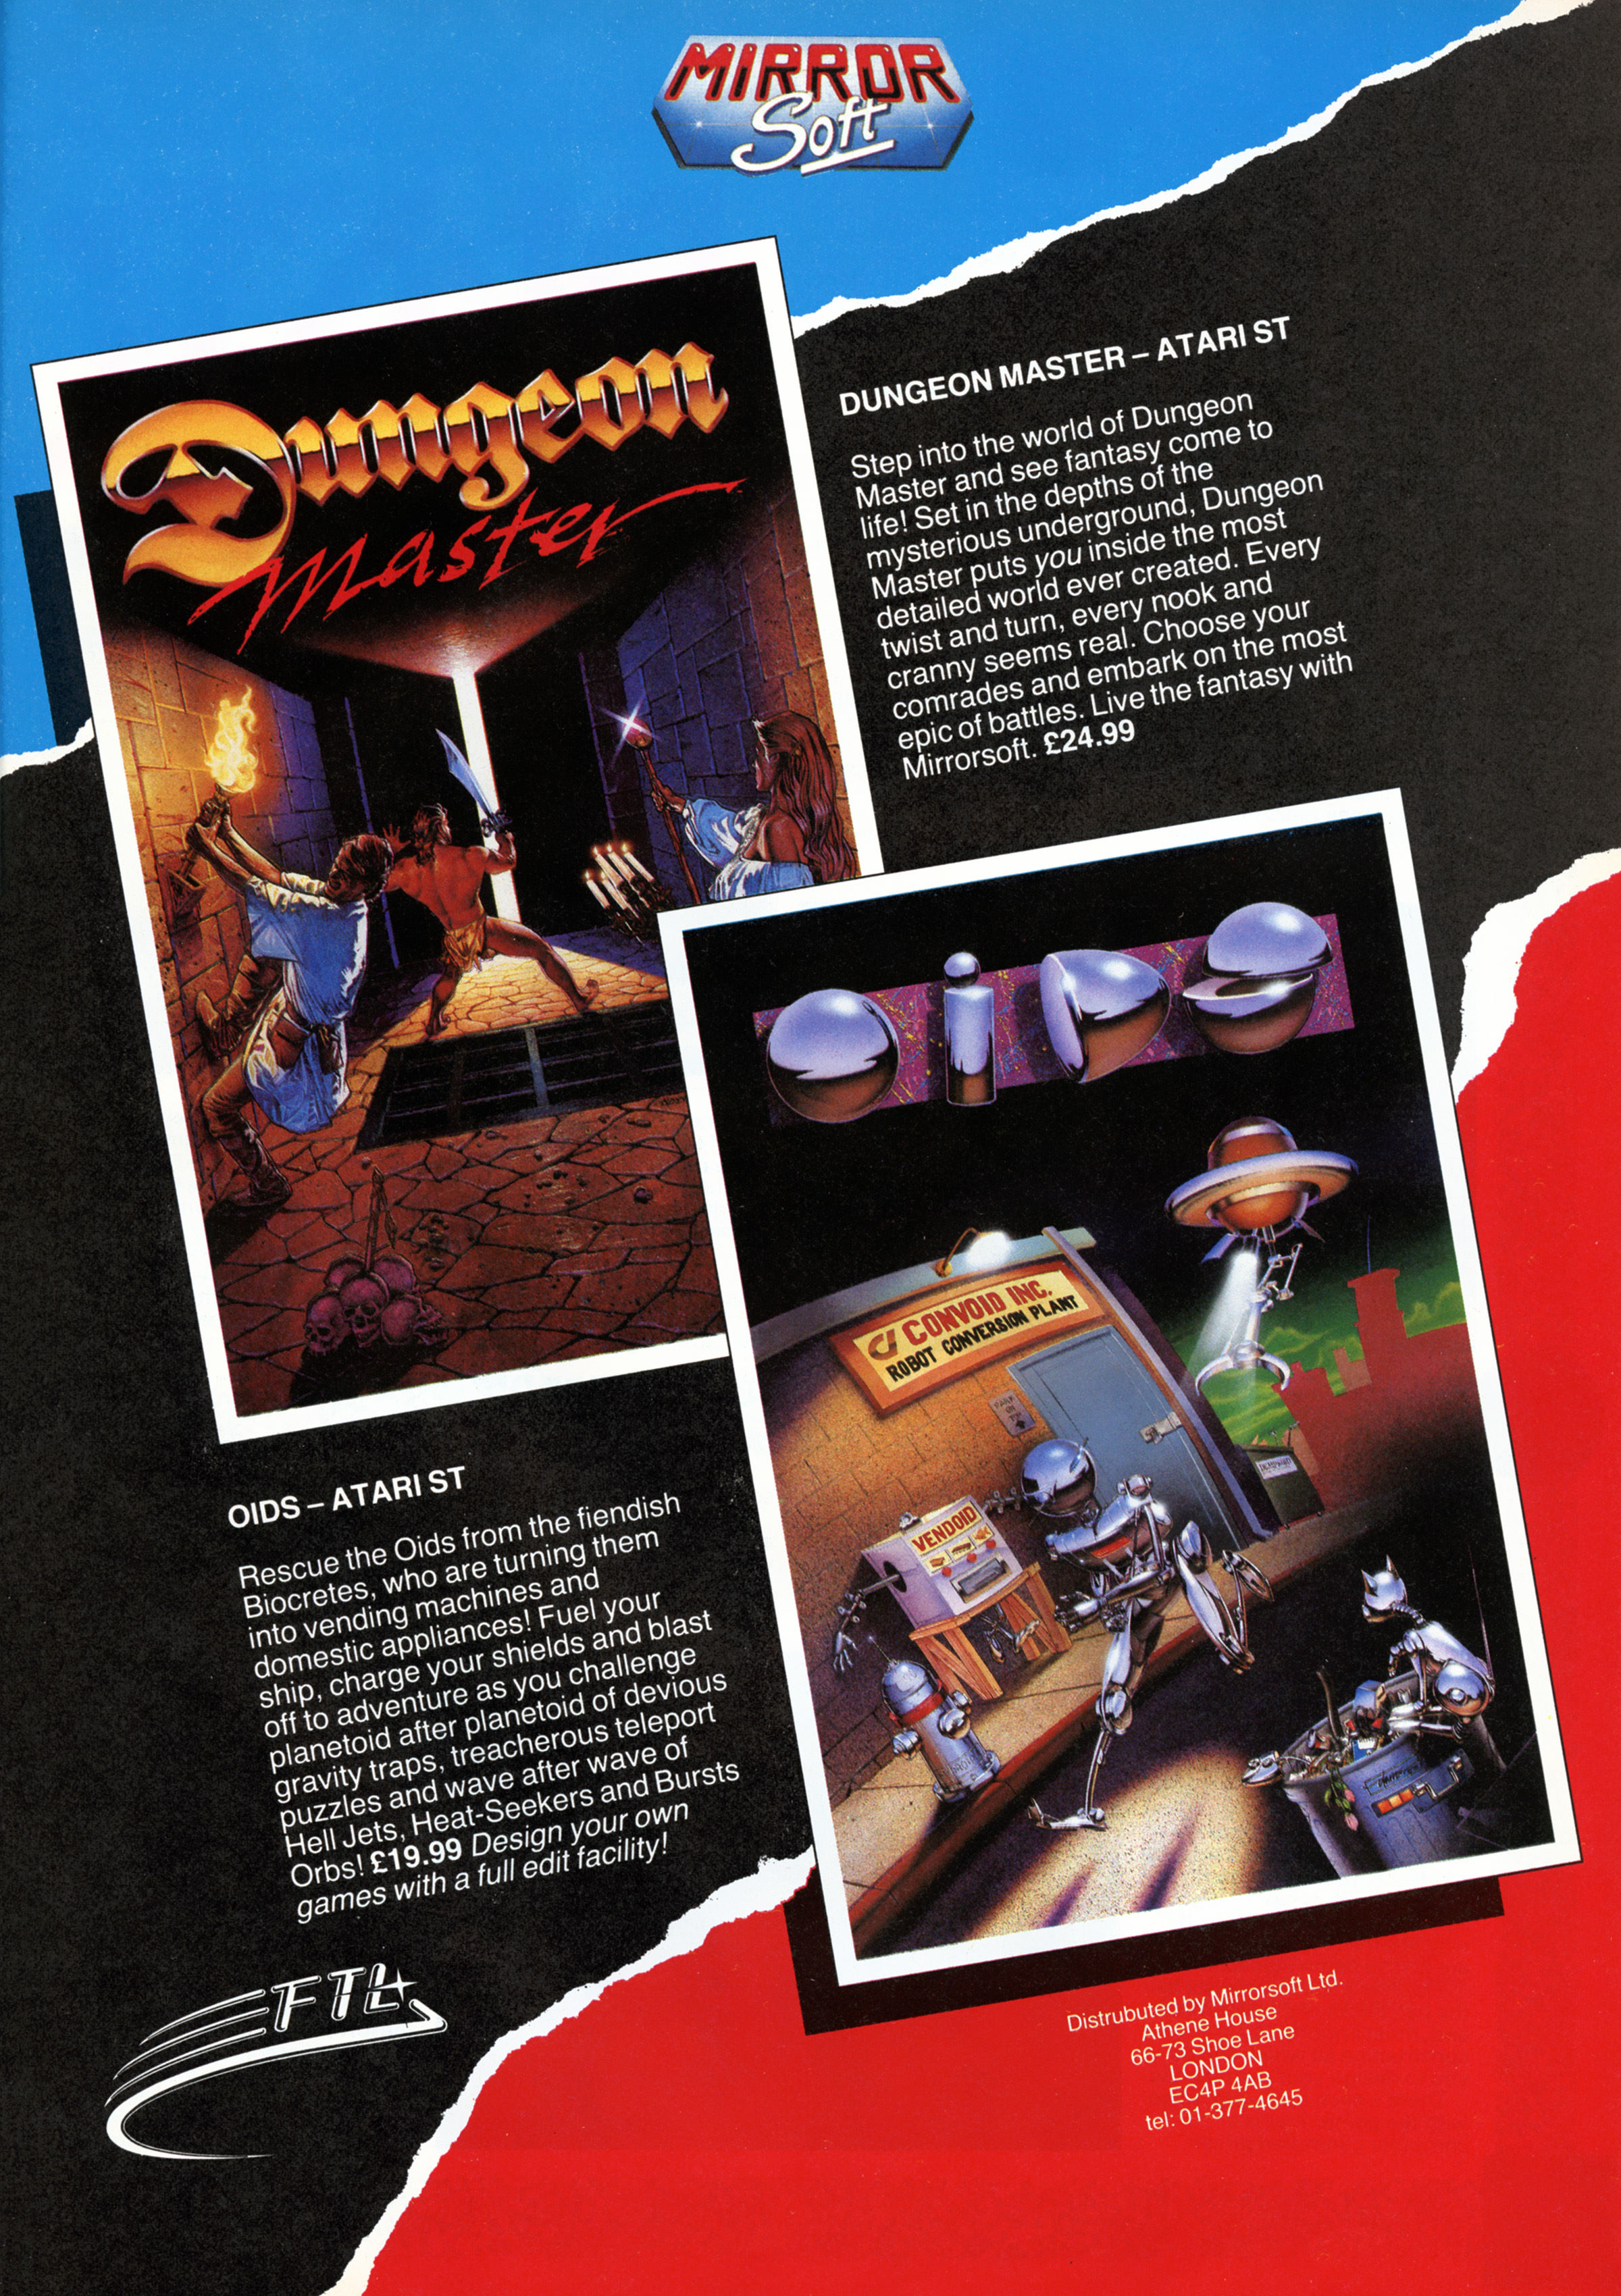 Dungeon Master for Atari ST Advertisement published in British magazine 'Computer And Video Games', Issue #77 March 1988, Page 41